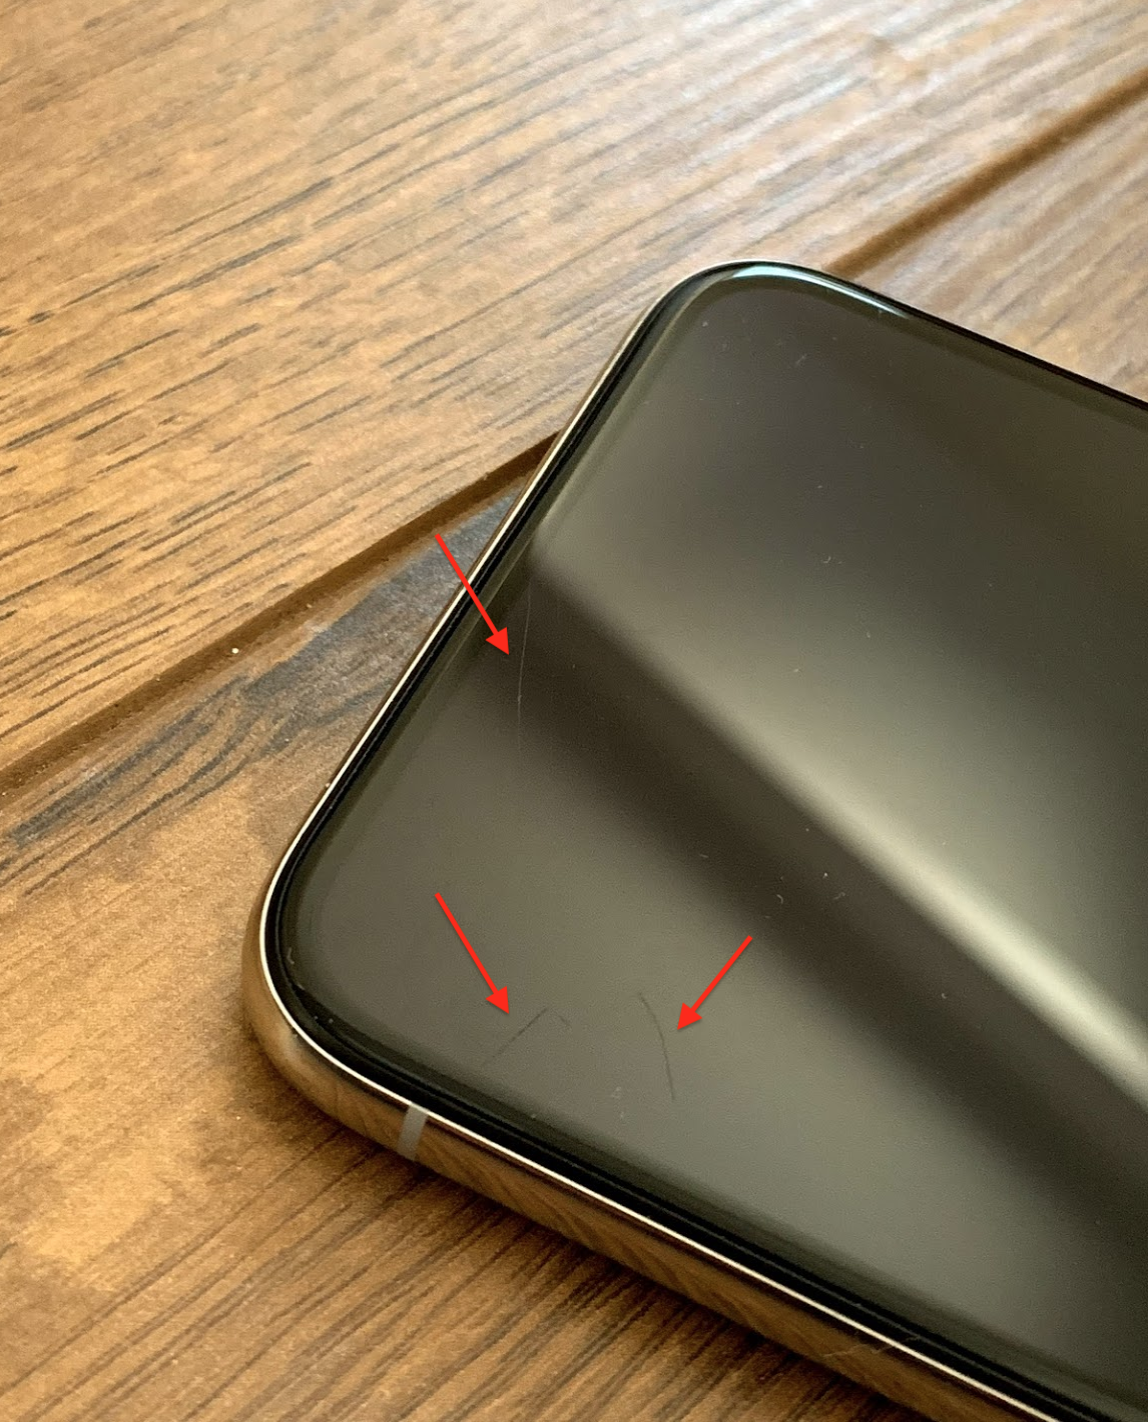 quality design f19a3 1f324 iPhone X - Can I repair screen scratches with AppleCare?   MacRumors ...